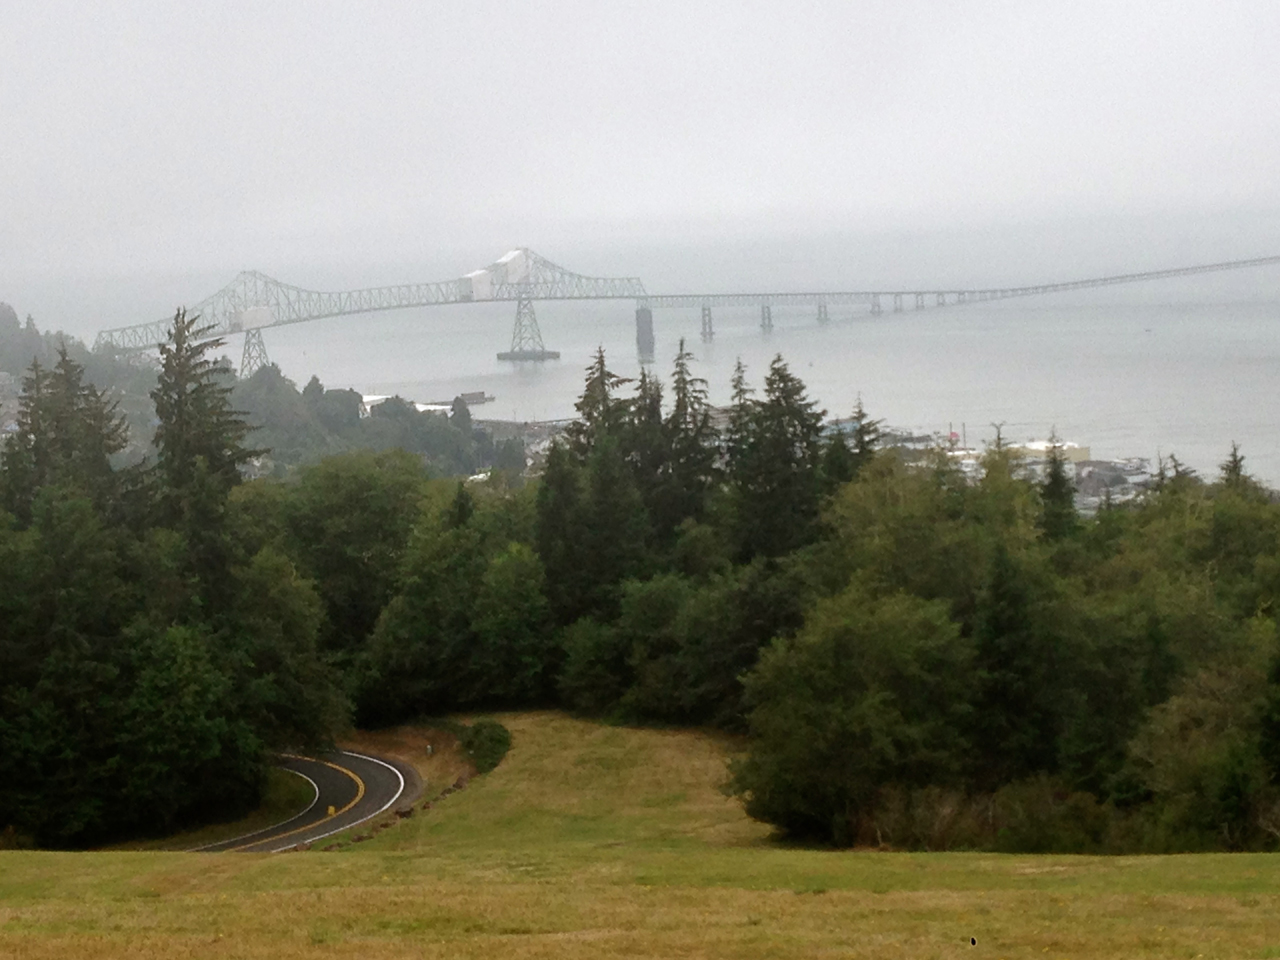 At 4.1 miles, the Astoria Megler Bridge in Astoria, Ore., is the longest 'continuous truss' in the nation and connects almost 2 million vehicles a year from Astoria to Washington state.